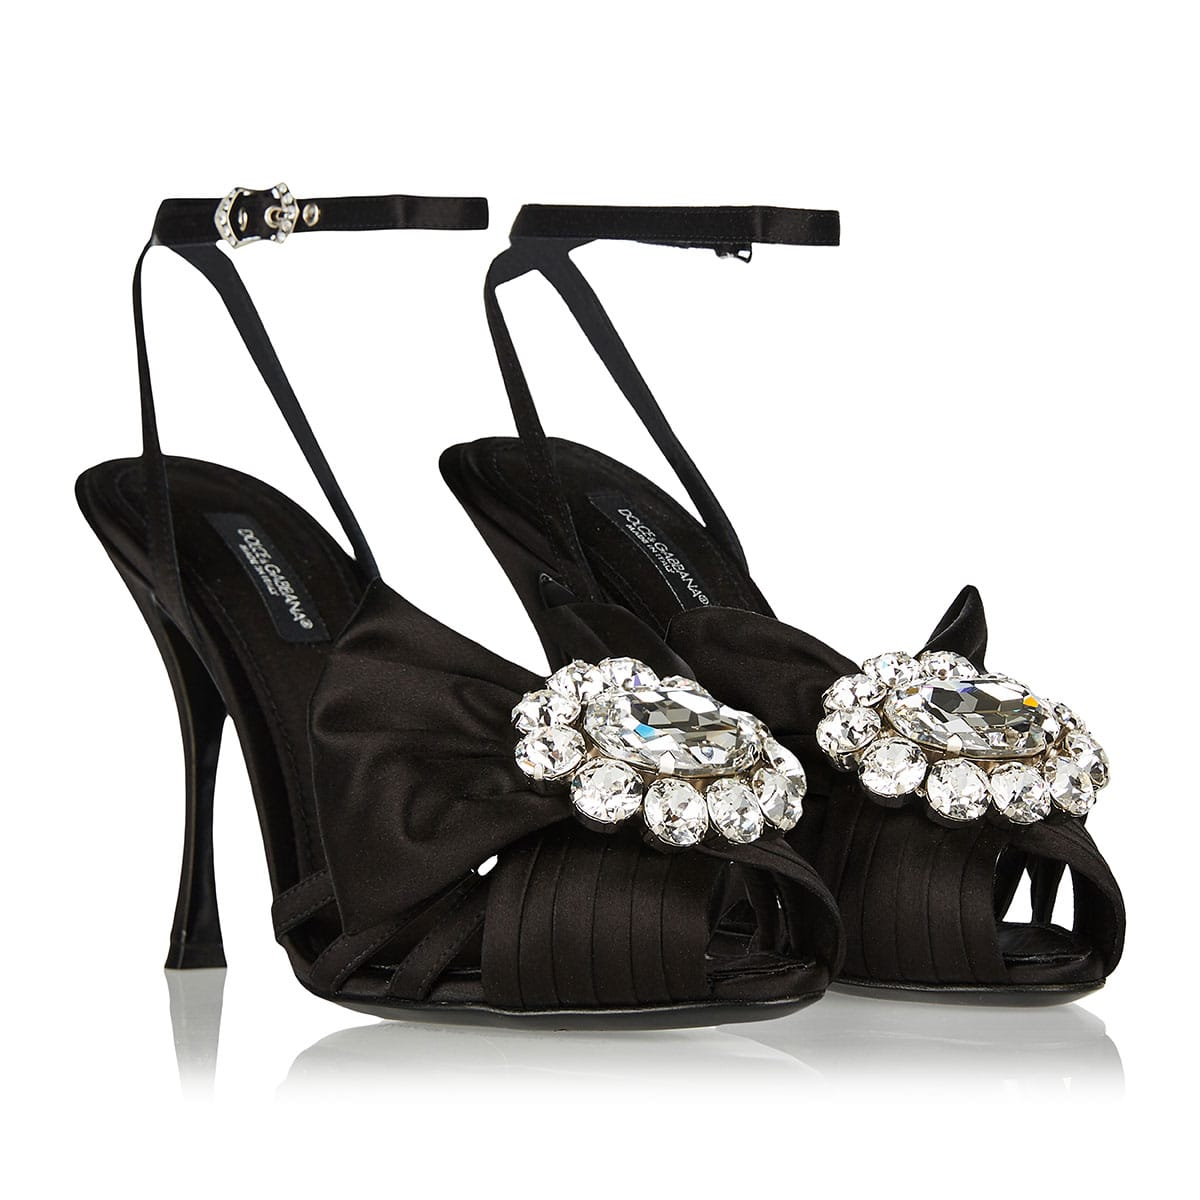 Jeweled satin sandals